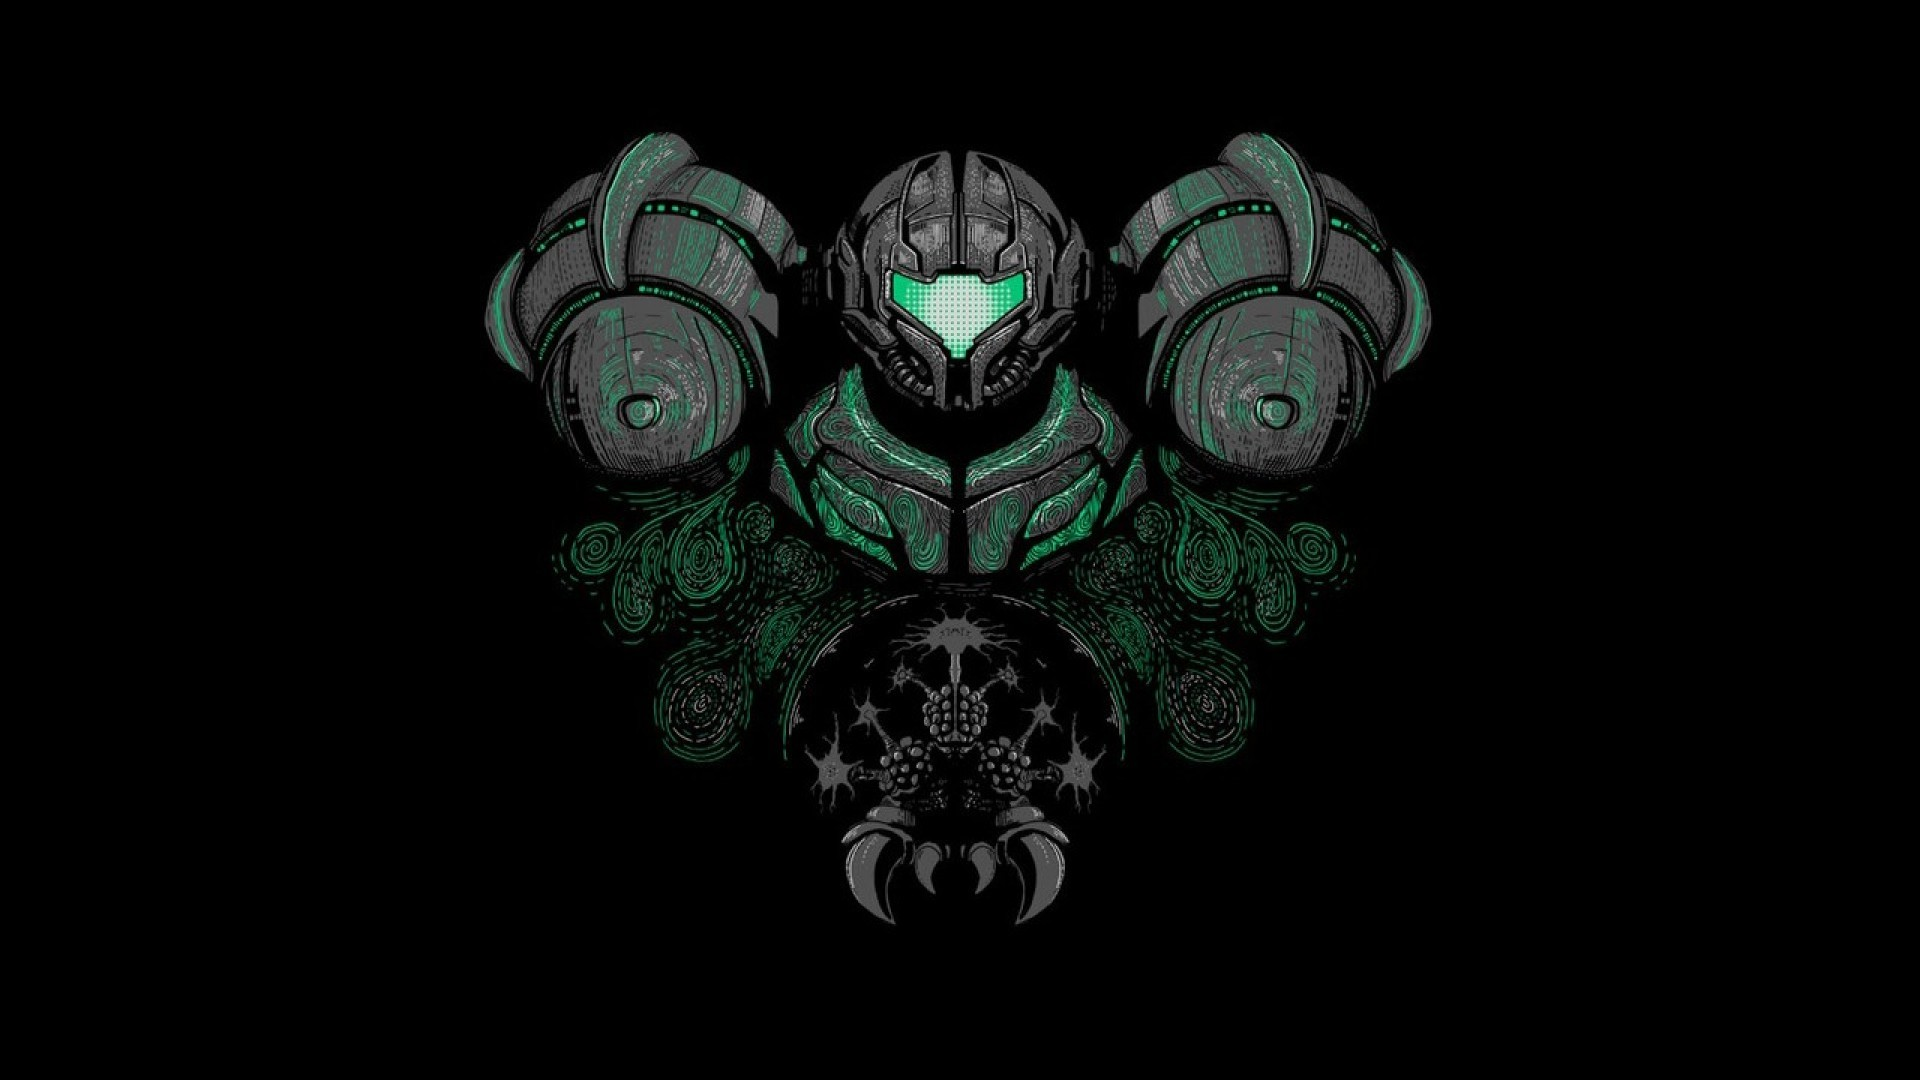 1920x1080 Metroid Wallpaper